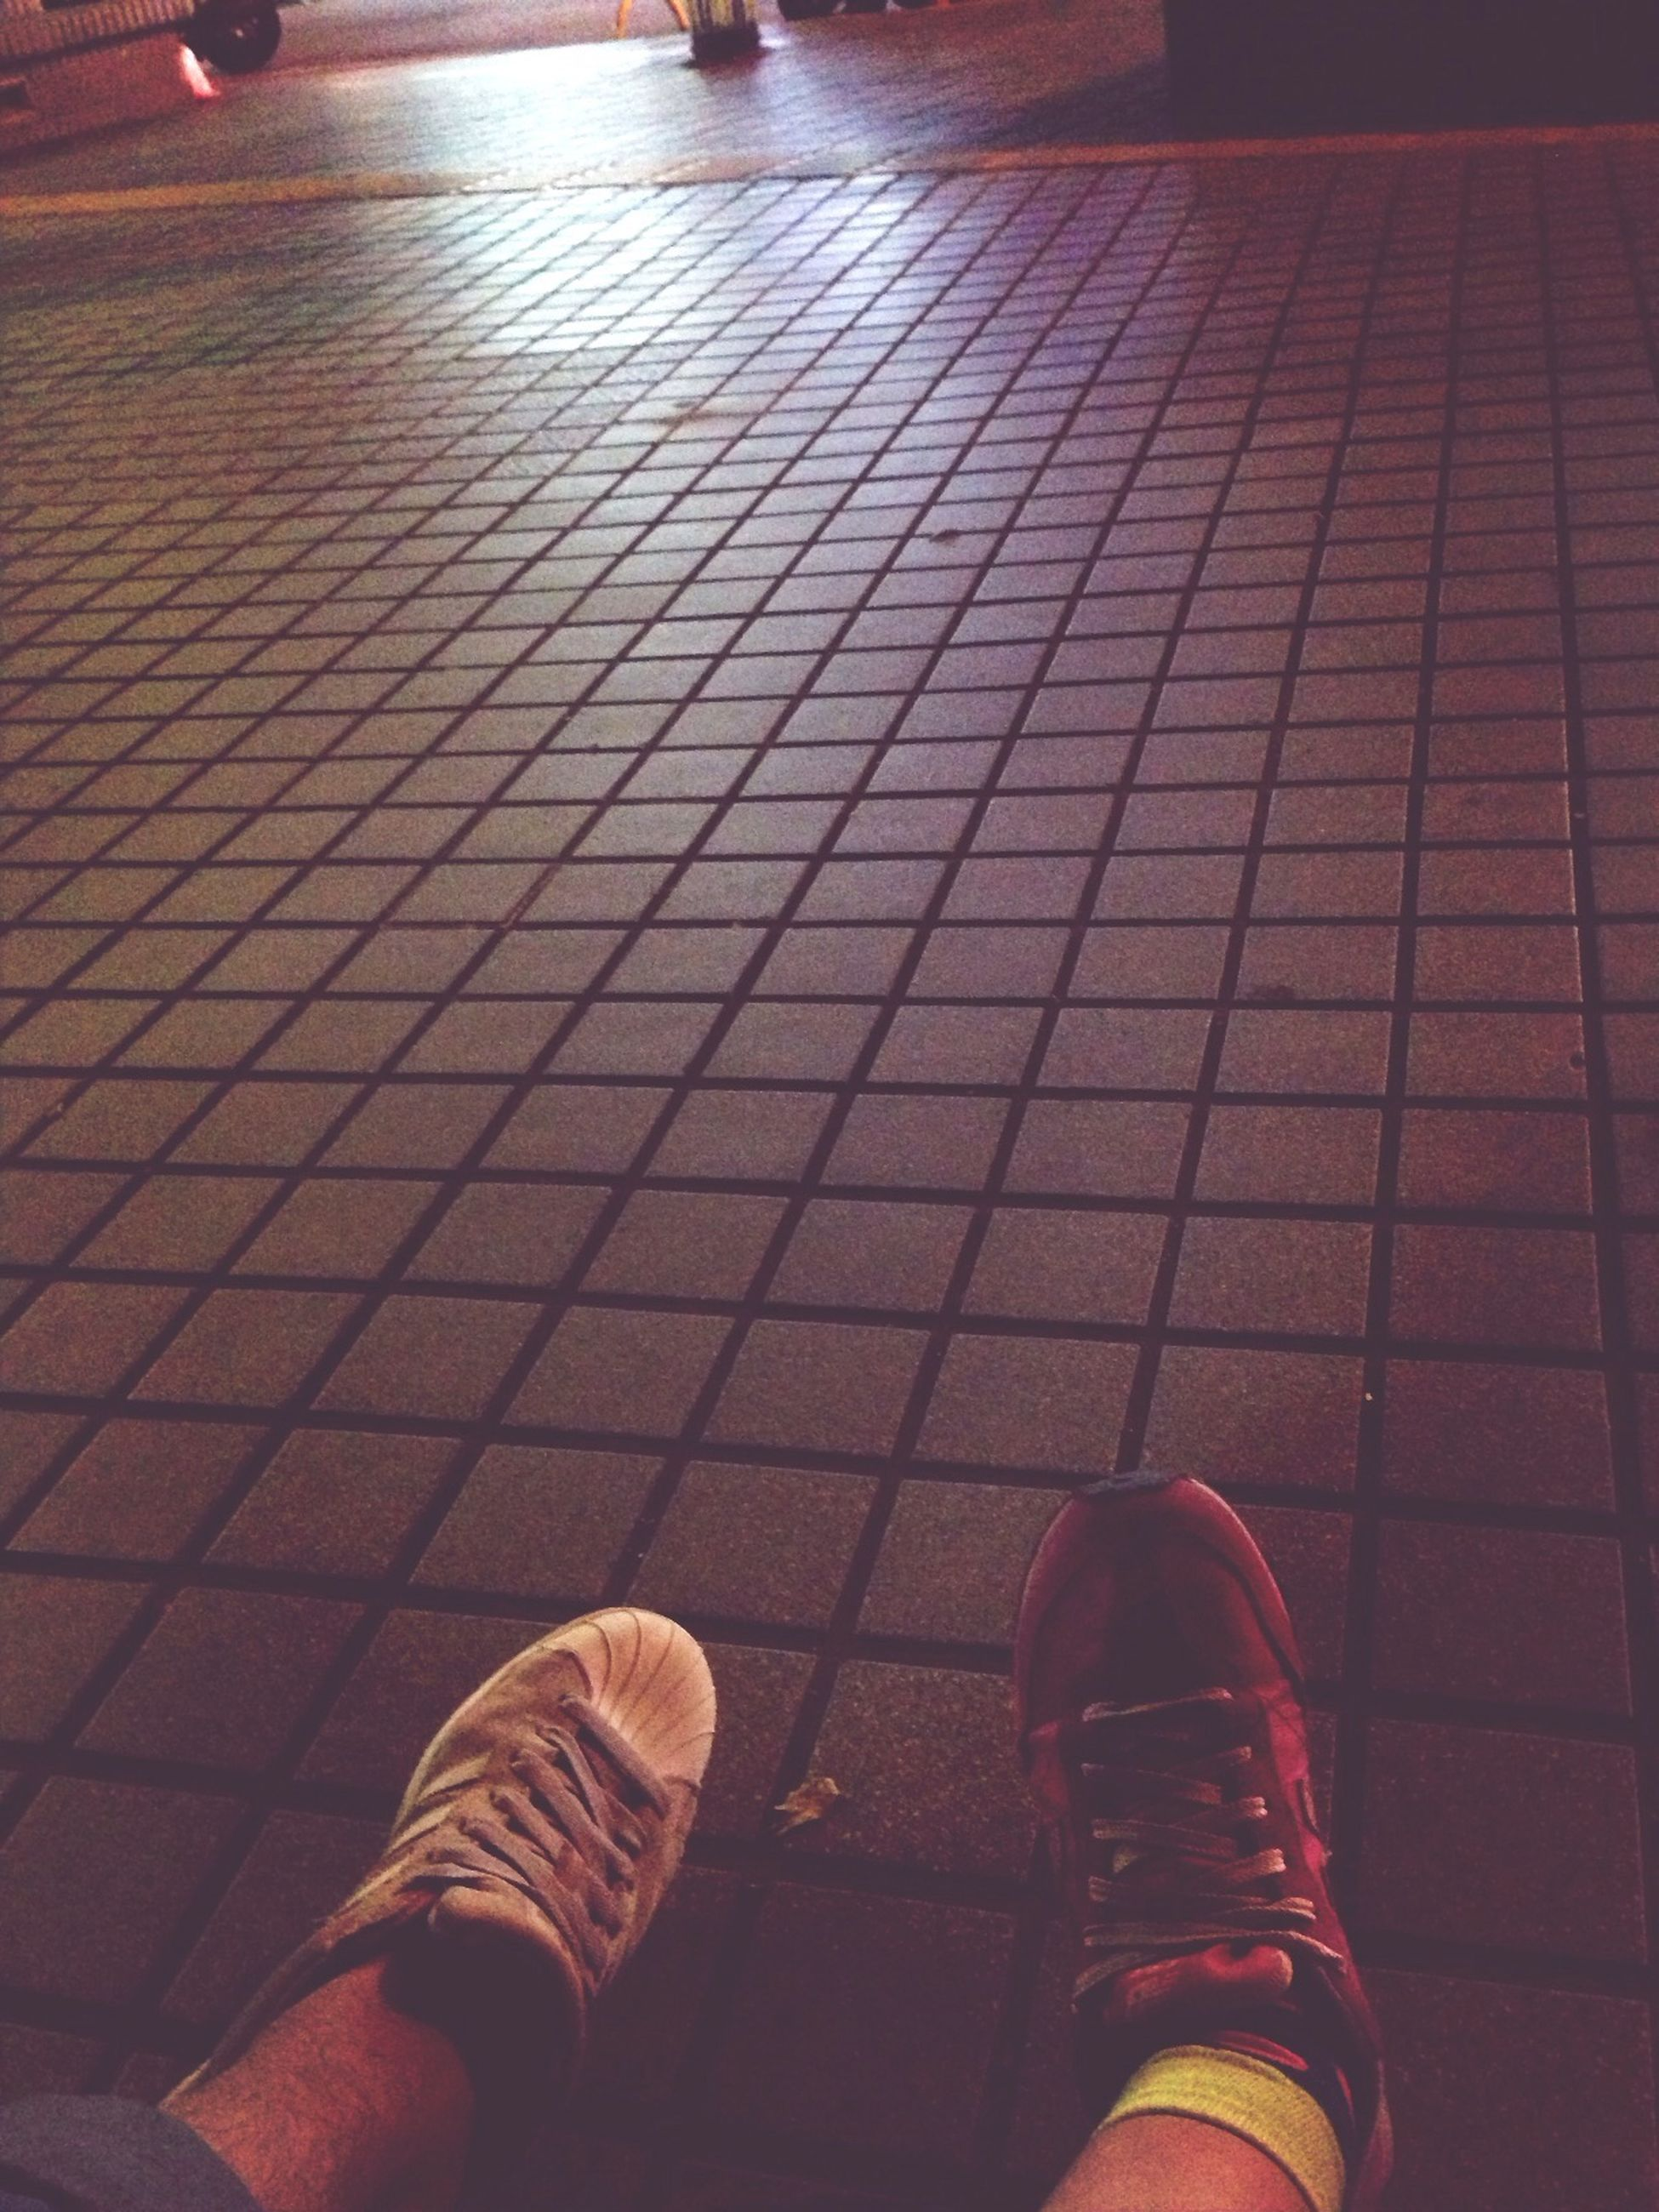 indoors, wall - building feature, pattern, flooring, absence, illuminated, empty, tiled floor, chair, high angle view, lighting equipment, no people, tile, shoe, architecture, built structure, shadow, wall, sunlight, design